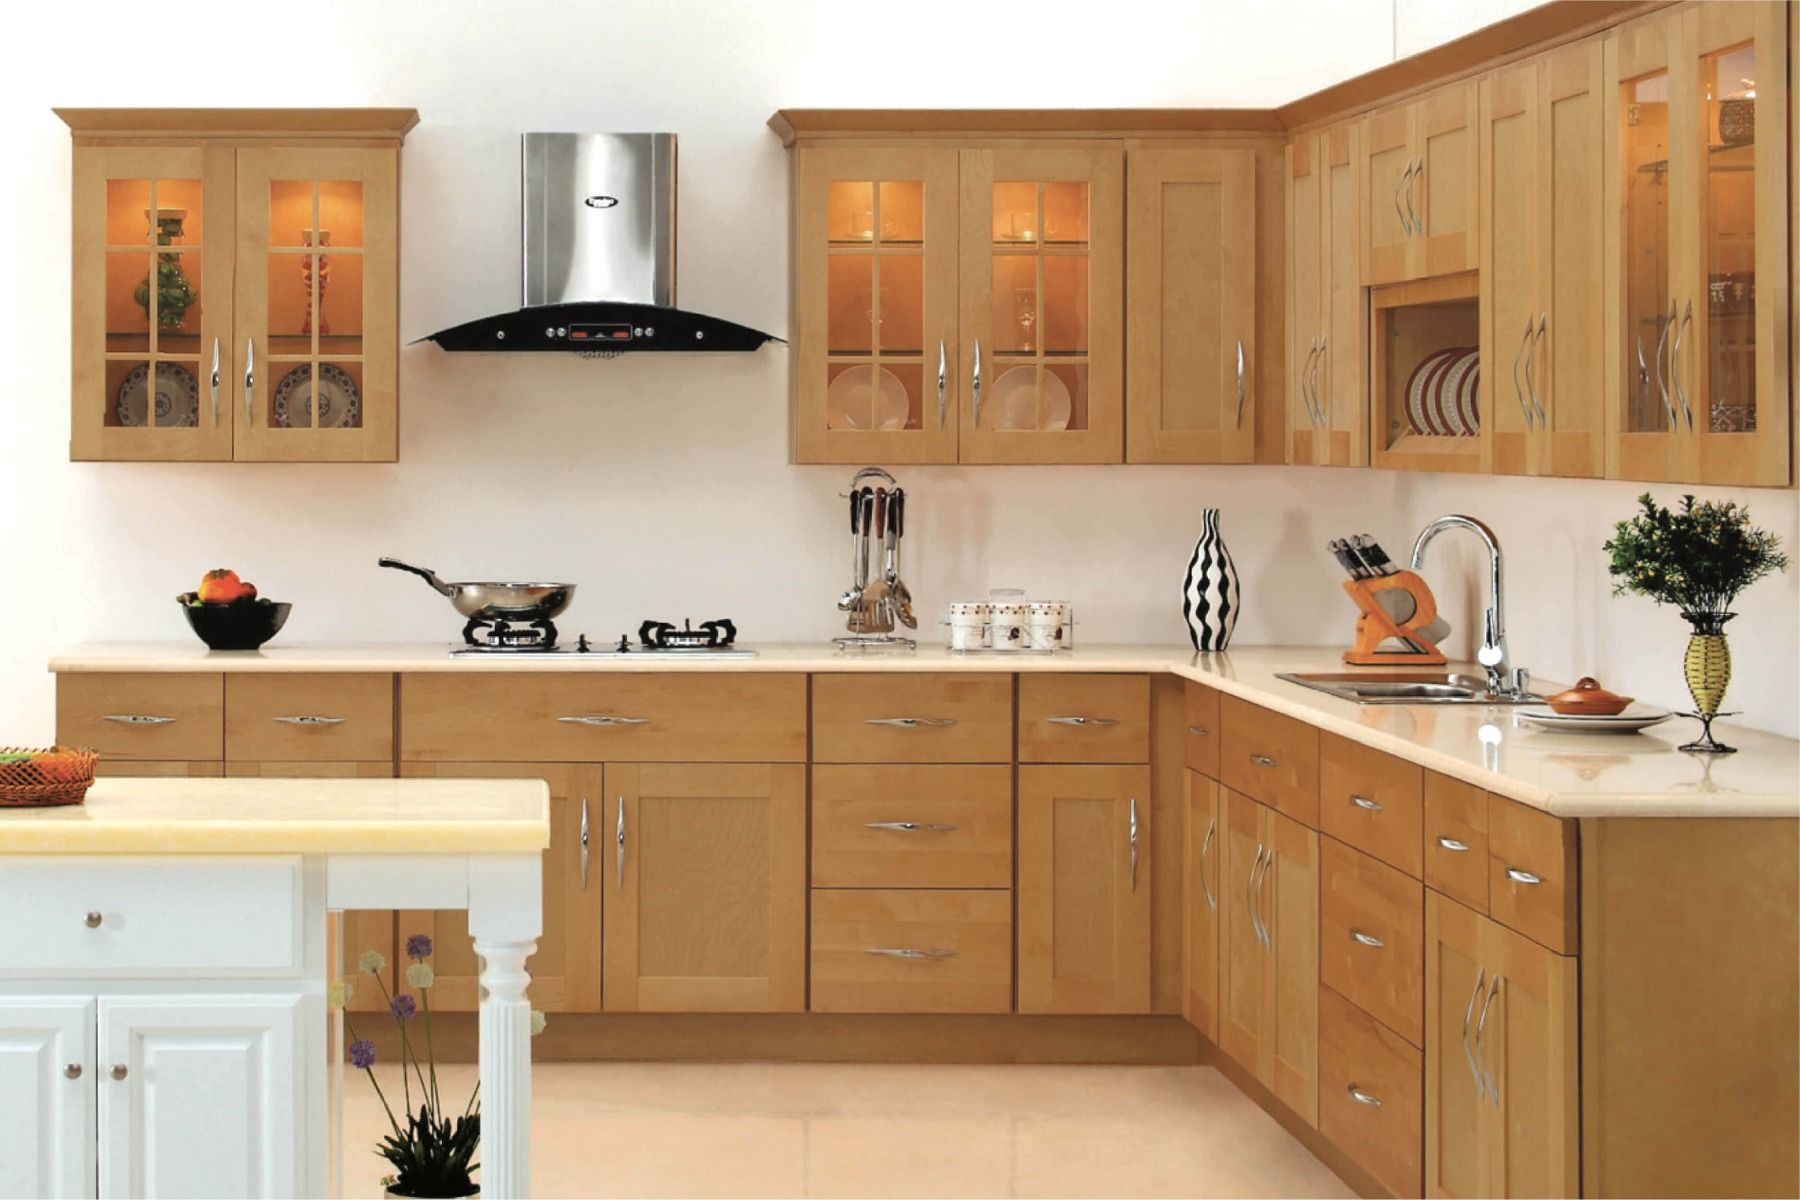 Georgia Honey Shaker Cabinets Best Selling Discounted Get A Free Design In 2020 Simple Kitchen Design Traditional Kitchen Design Modern Kitchen Design